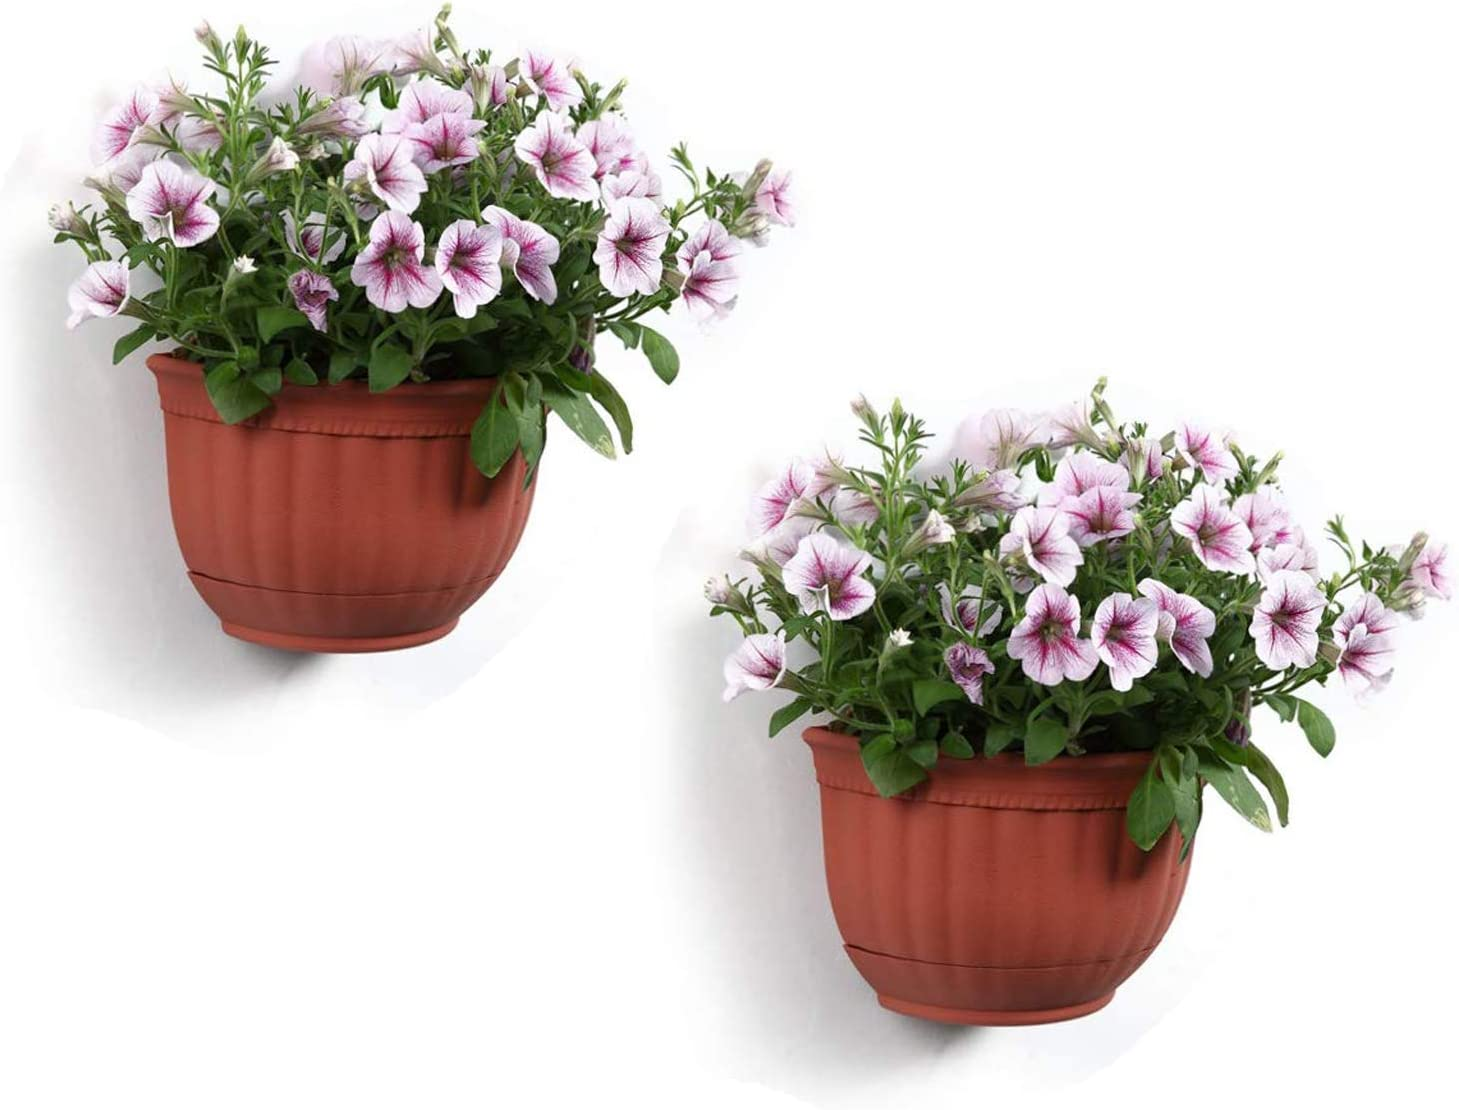 T4U Resin Wall Planter Brick Red Set of 2, Wall Mounted Garden Plant Flower Pot Basket Container Indoor Outdoor Use for Orchid Herb Aloe Succulent Cactus Home Office Porch Wall Decoration Gift